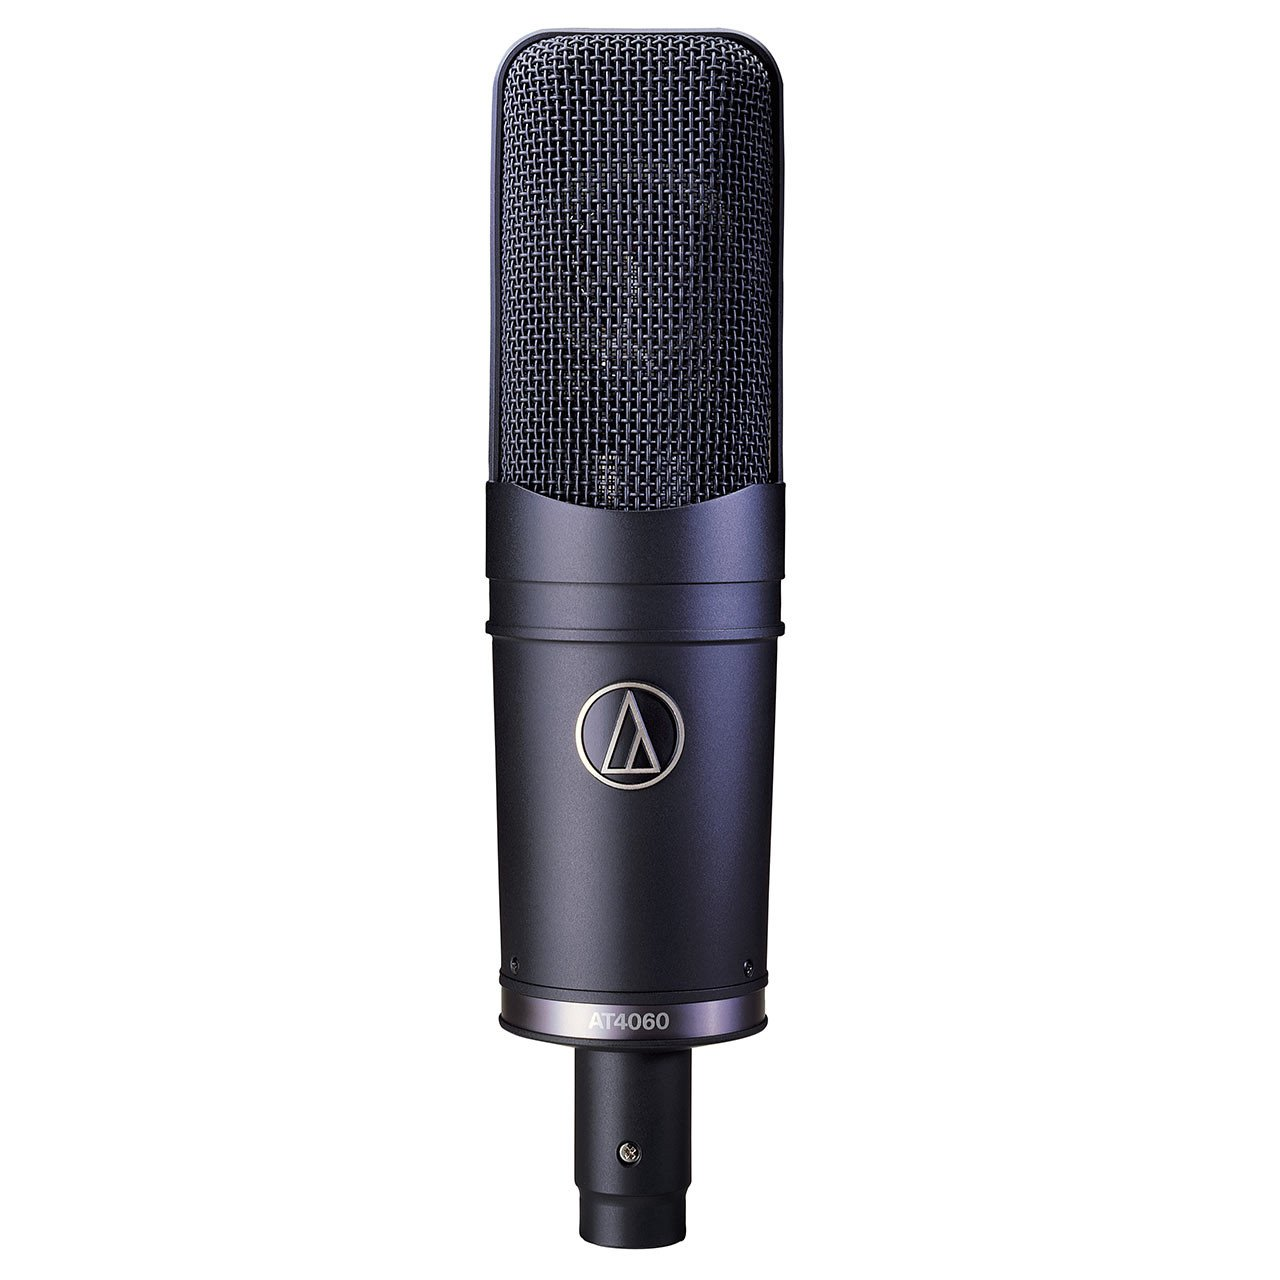 Tube Microphones - Audio-Technica AT4060 Cardioid Condenser Tube Microphone